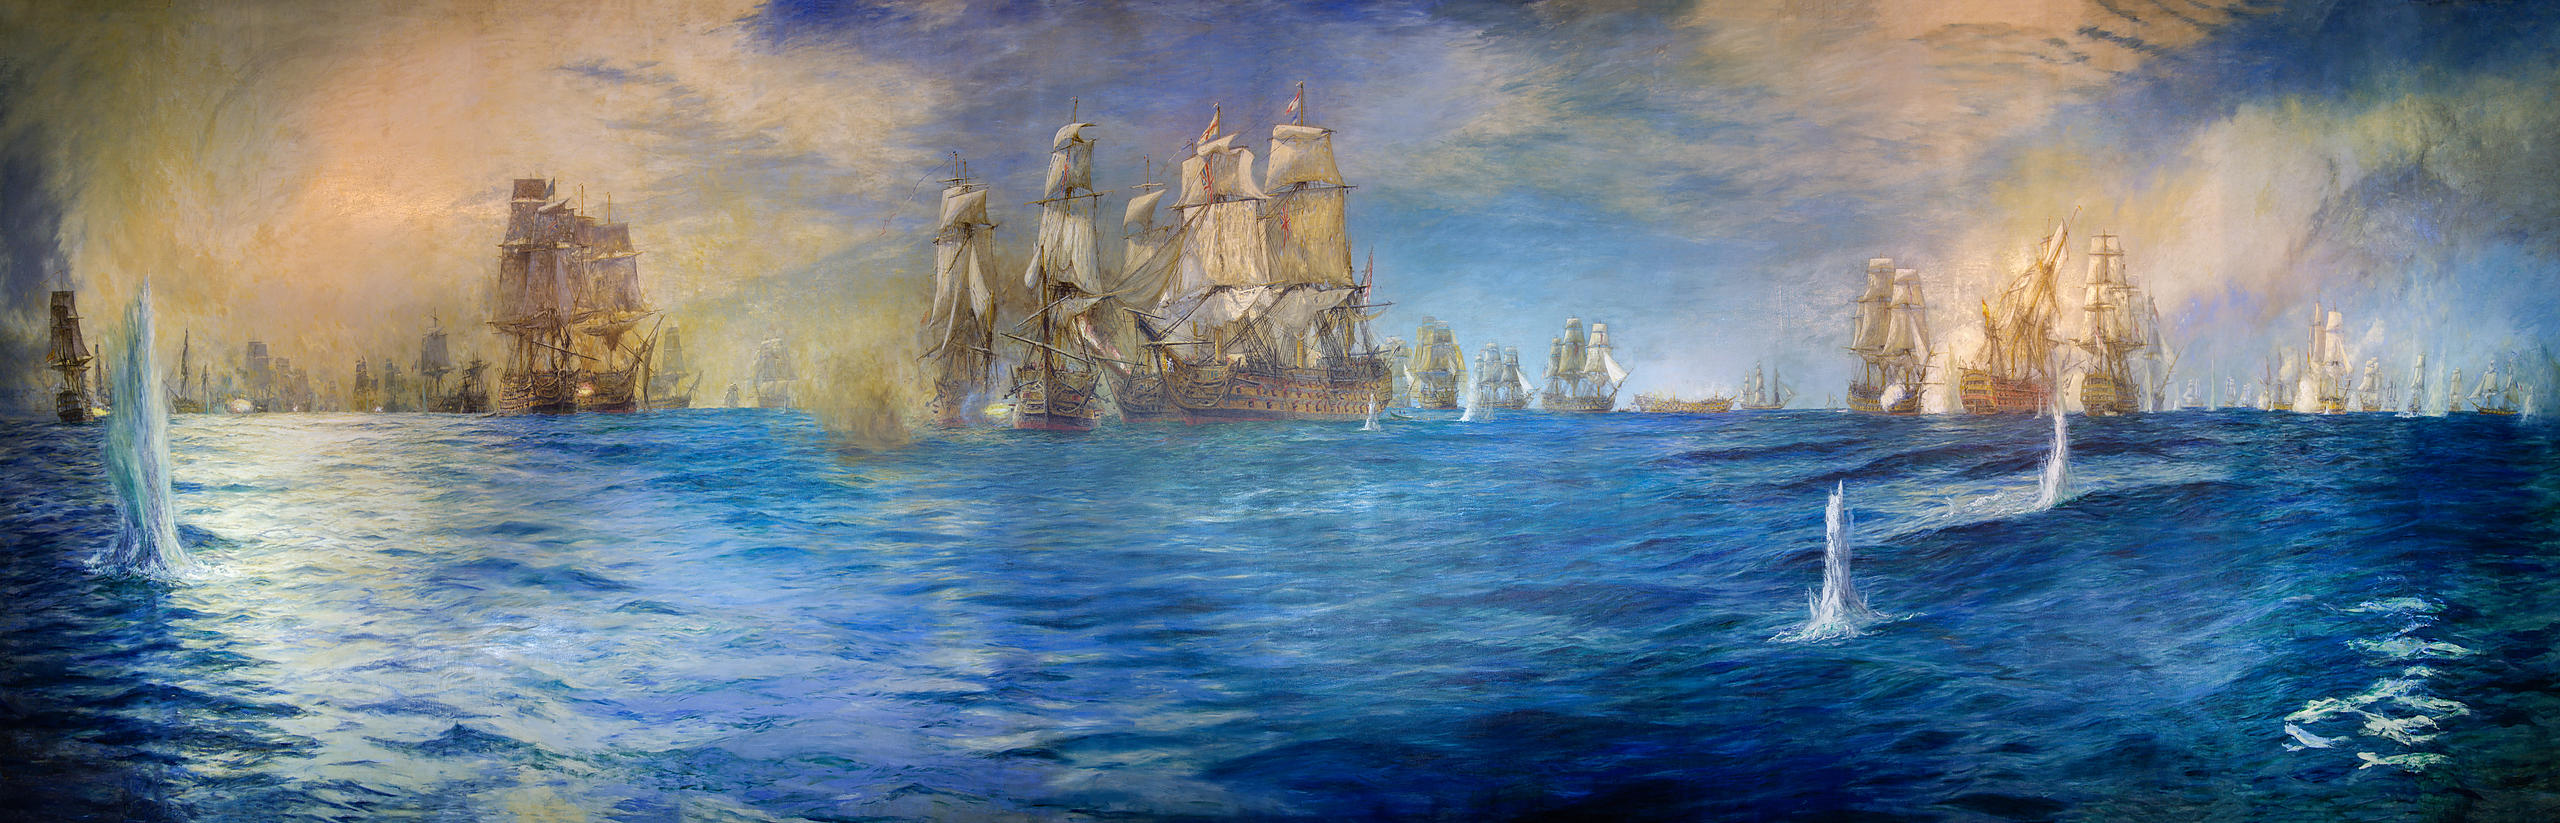 The Wyllie Painting of the Battle of Trafalgar in The Victory Gallery at the Portsmouth Historic Dockyard